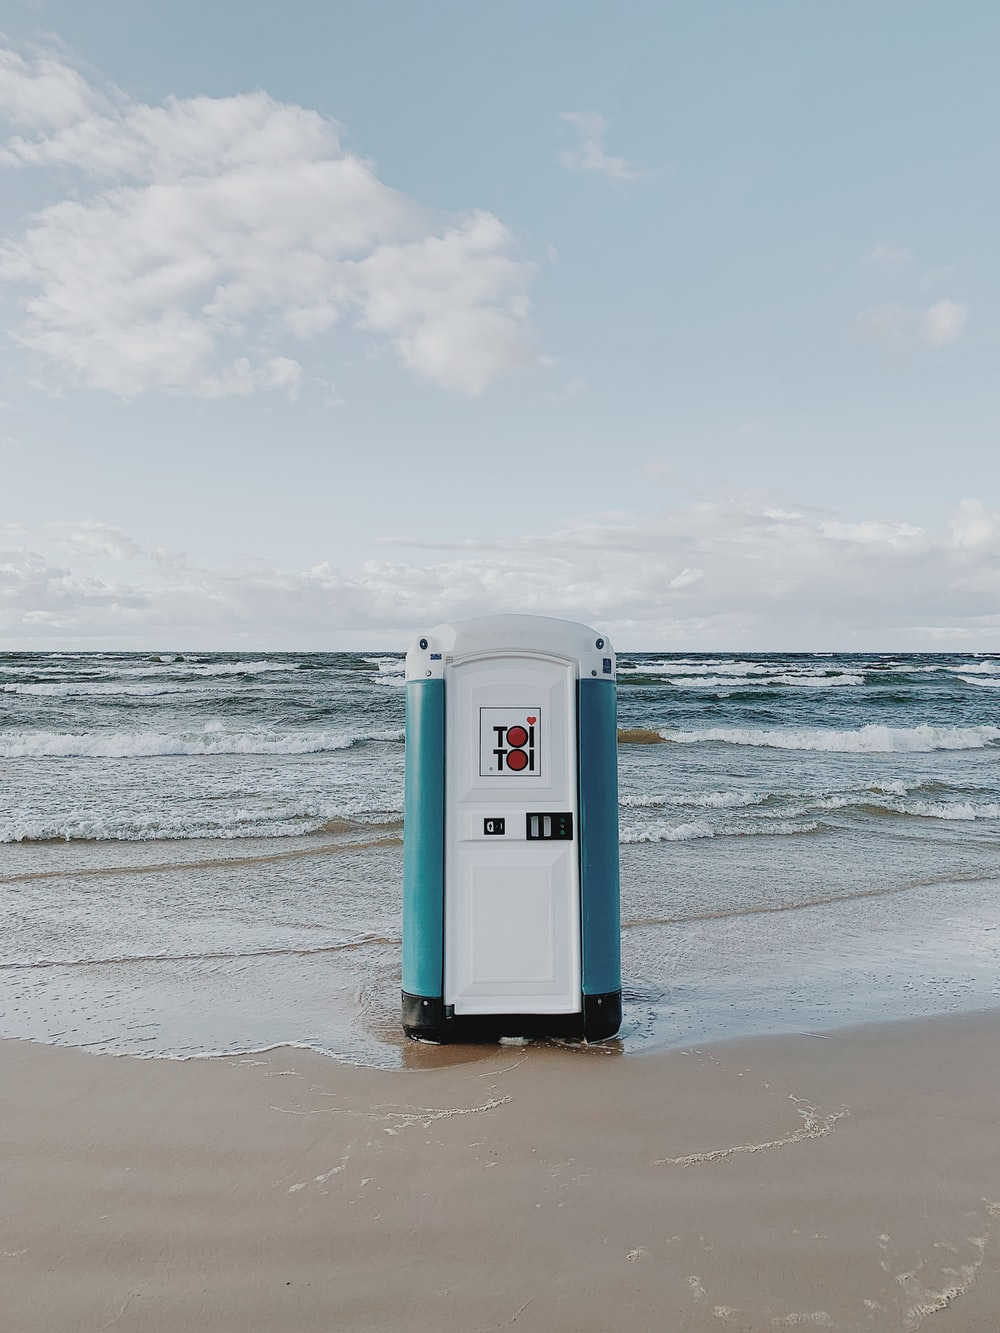 white and blue booth on seashore